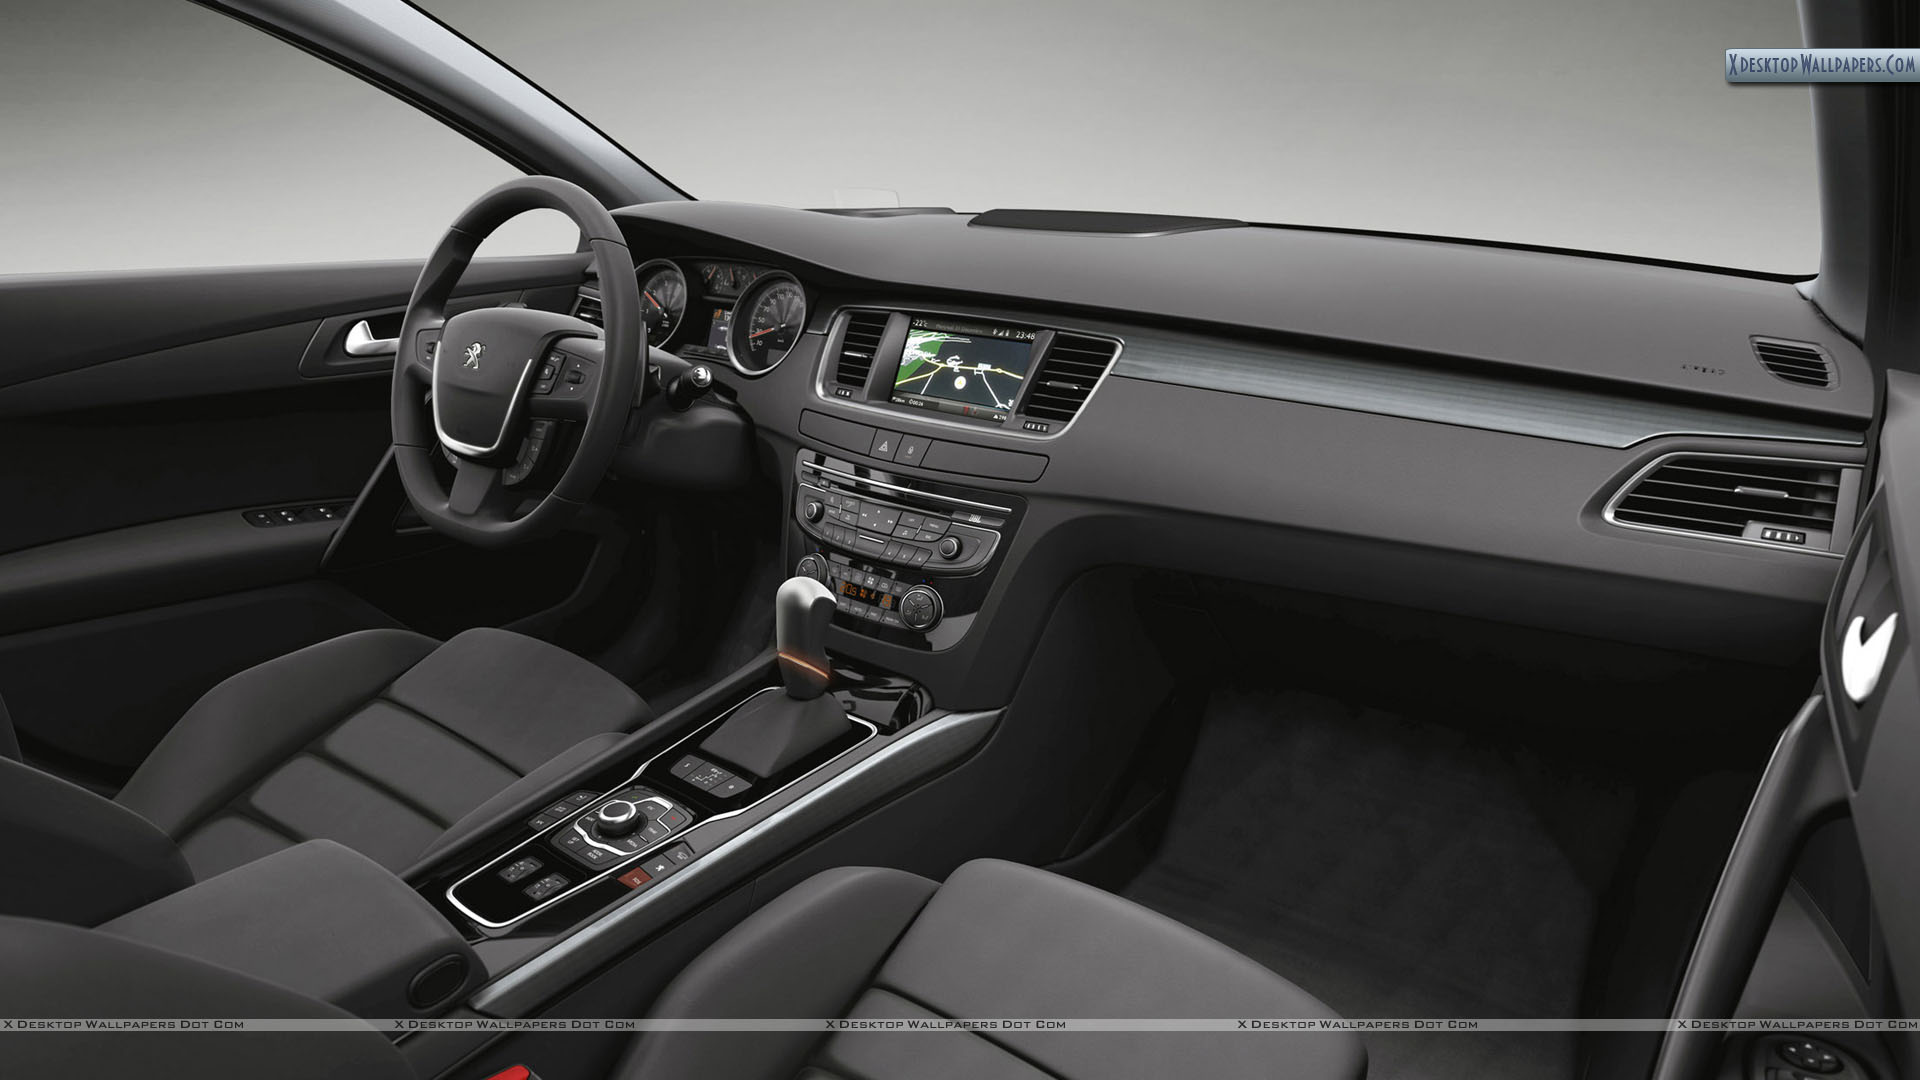 Peugeot 508 gt interior wallpaper for Interior 508 peugeot